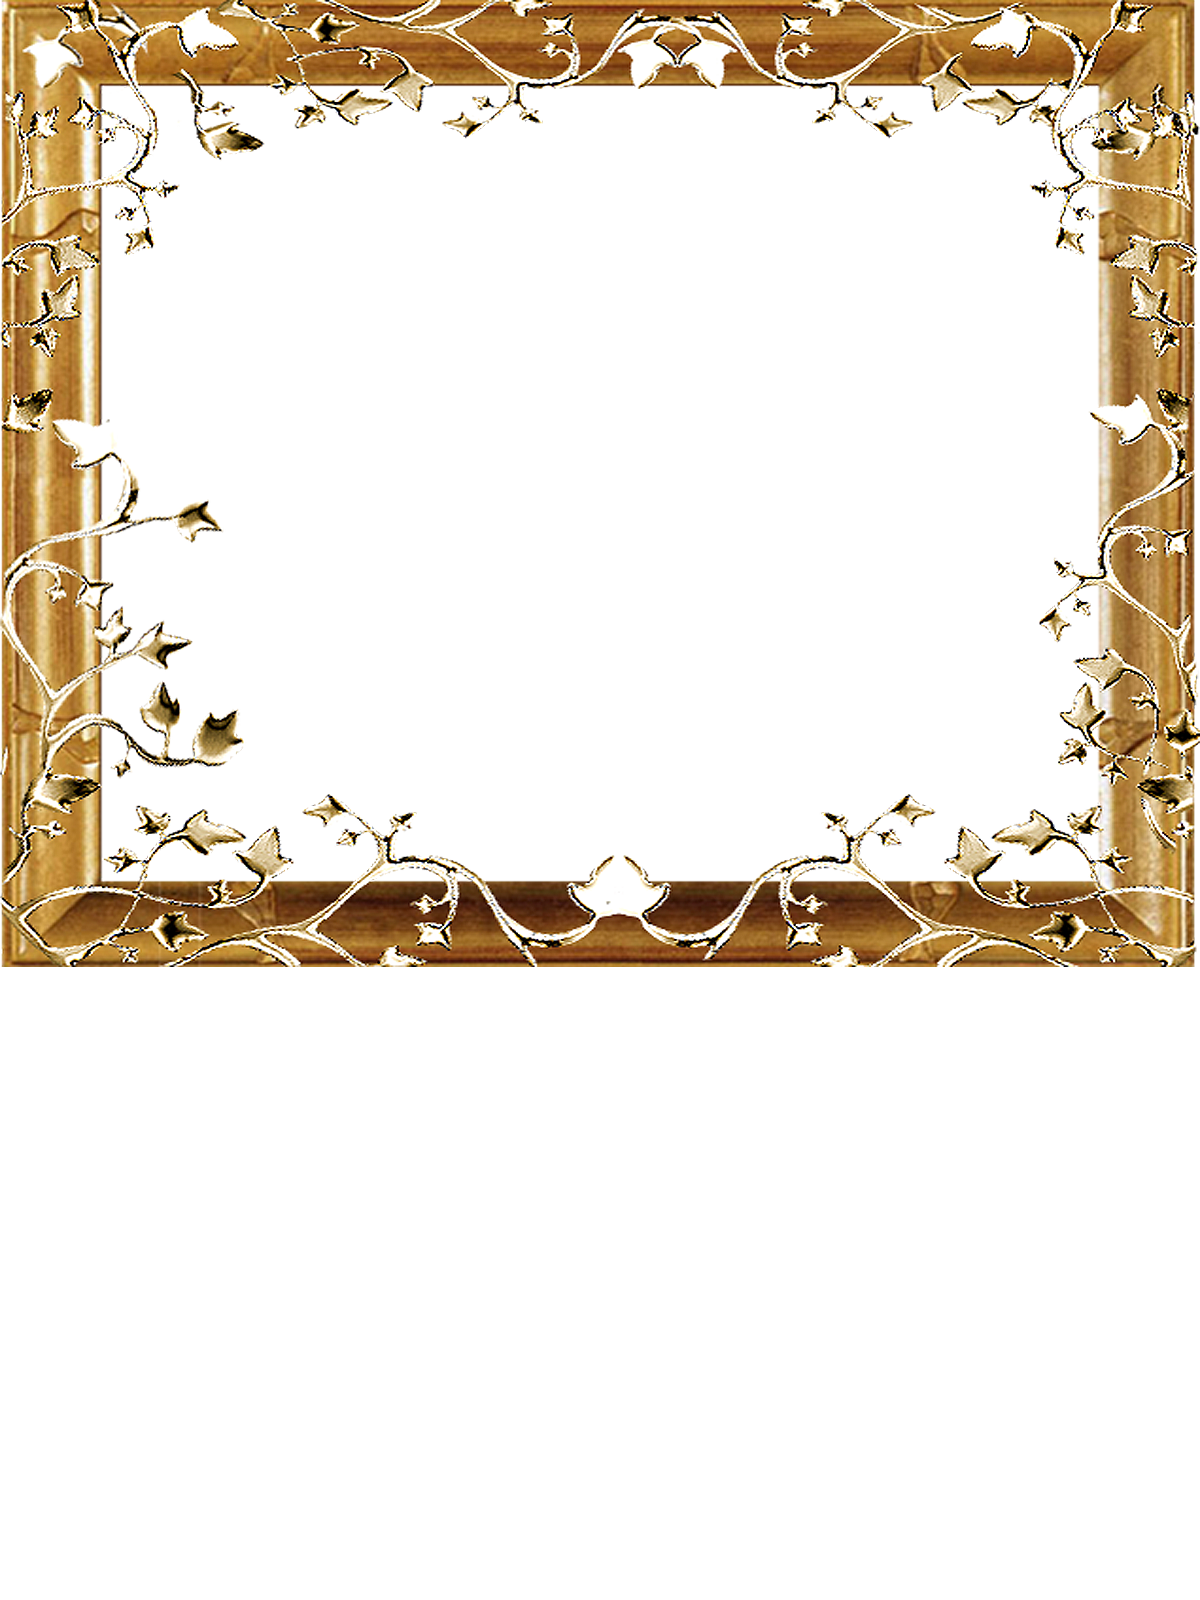 Pin by LadyT . on NOTHING BUT FRAMES.